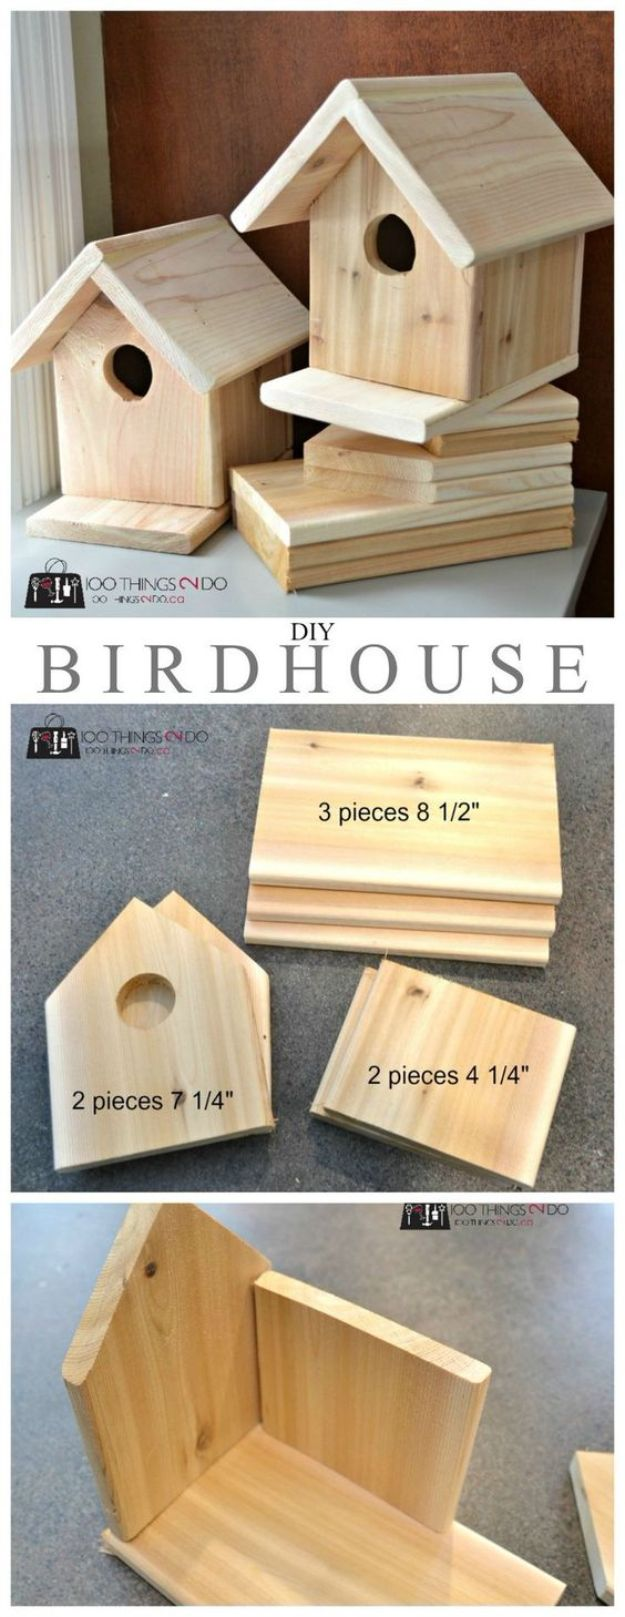 DIY Bird Houses - DIY Cedar Birdhouse - Easy Bird House Ideas for Kids and Adult To Make - Free Plans and Tutorials for Wooden, Simple, Upcyle Designs, Recycle Plastic and Creative Ways To Make Rustic Outdoor Decor and a Home for the Birds - Fun Projects for Your Backyard This Summer